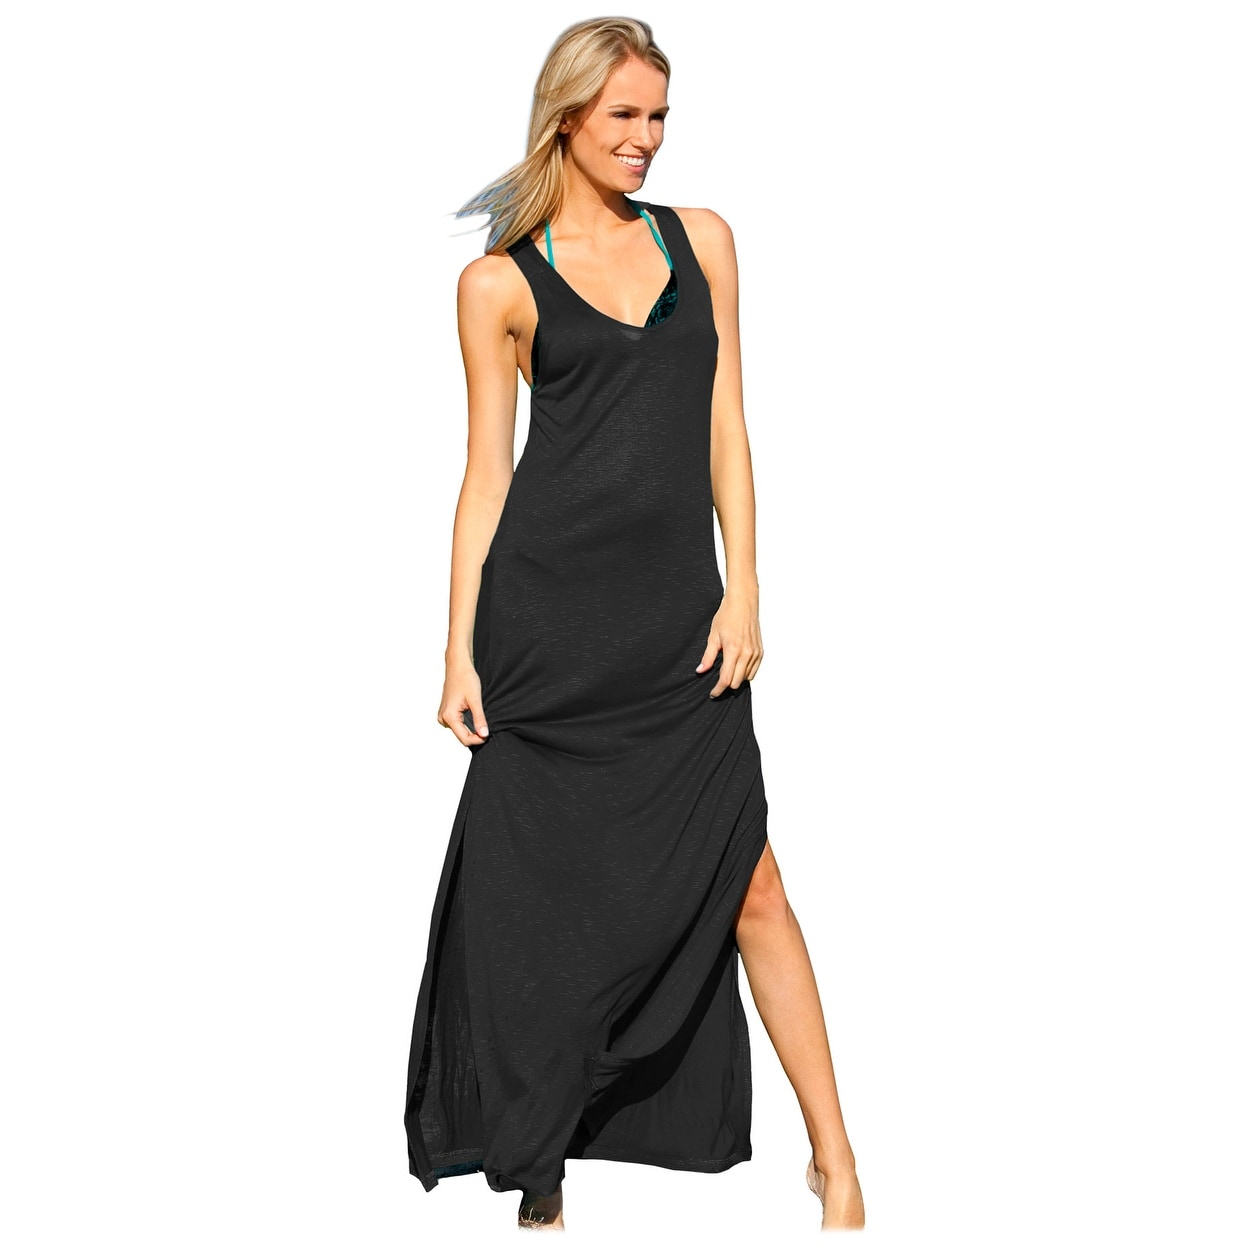 05817e3ed5 Shop Ingear Racerback Maxi Dress Swimsuit Cover Up - Free Shipping On  Orders Over $45 - Overstock.com - 15360460